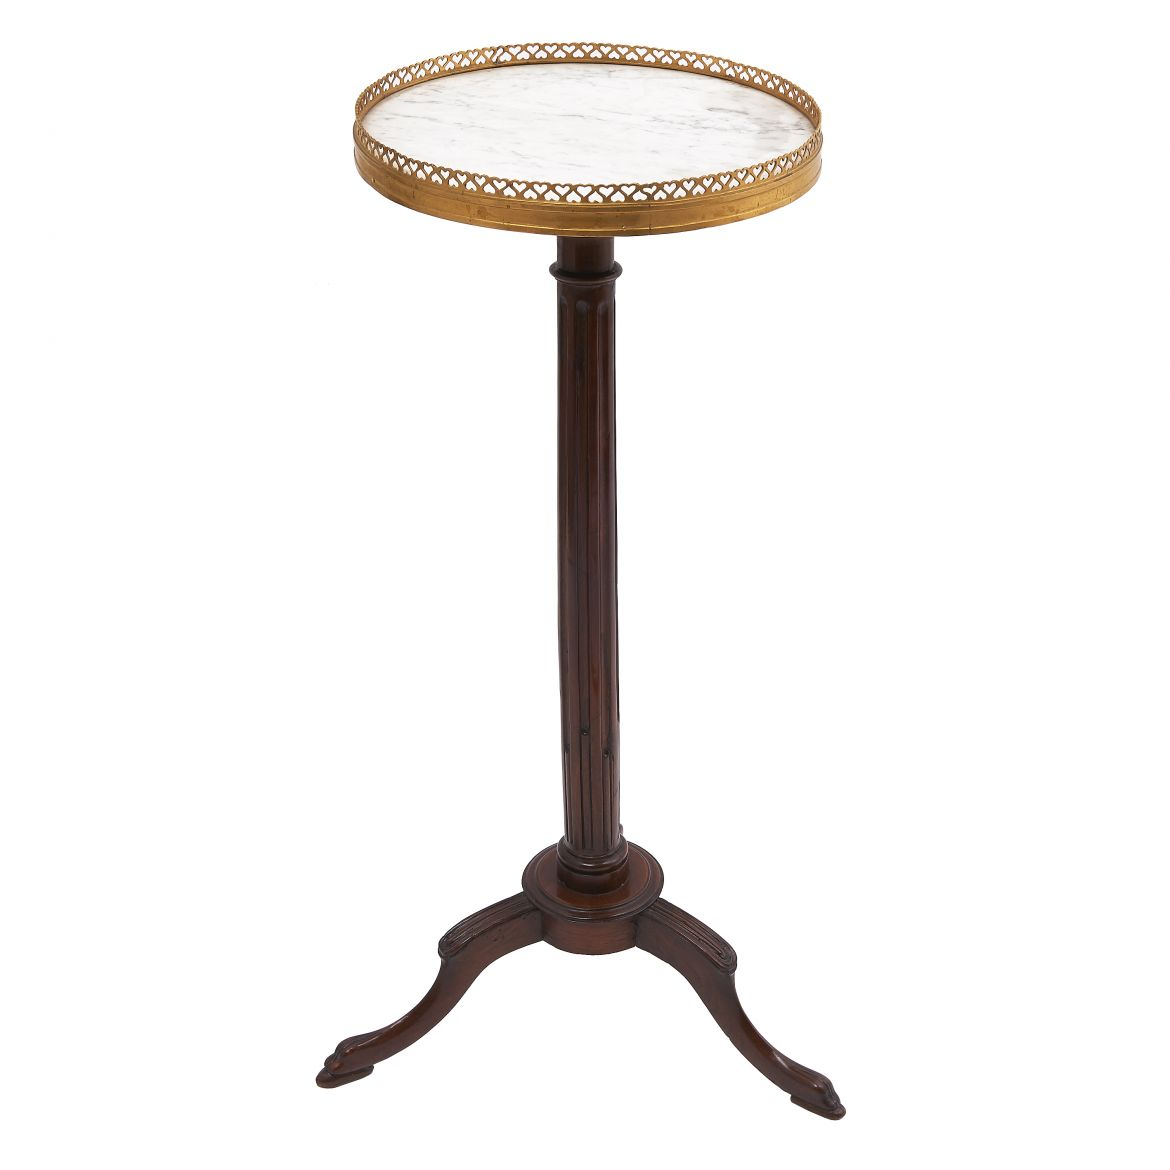 Louis XVI Walnut Sidetable